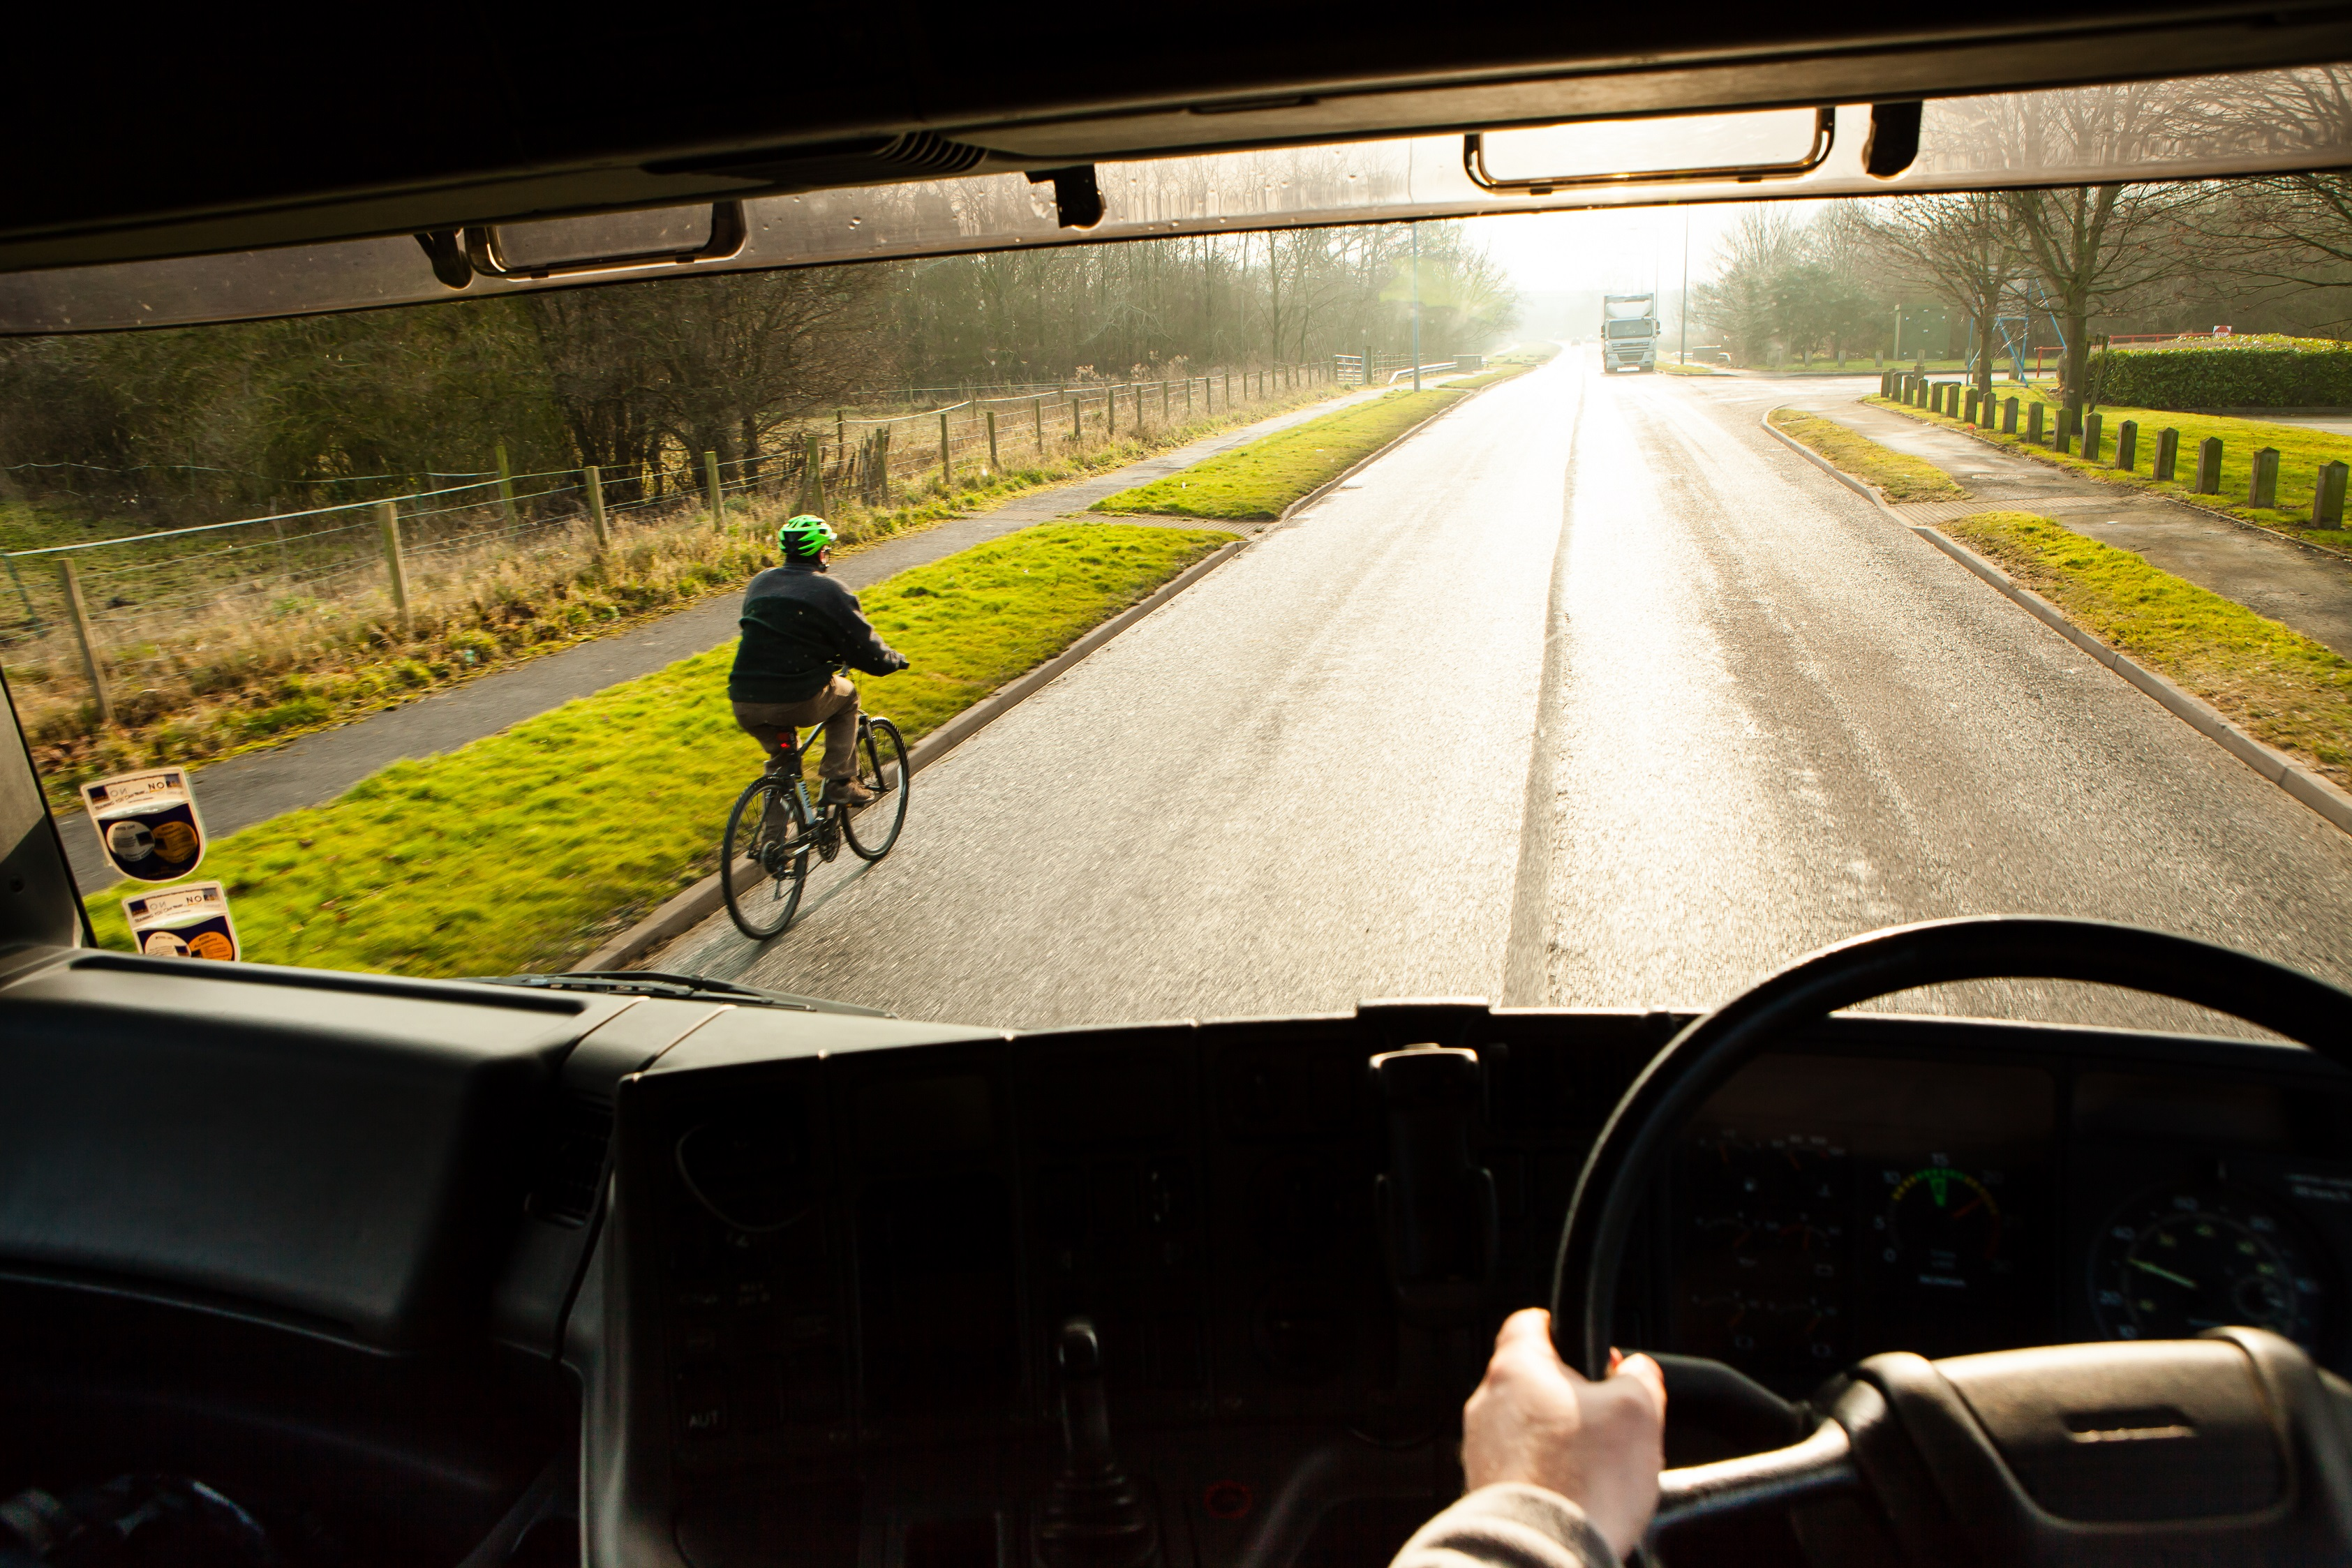 Driver Is One of First to Be Fined for Close-Call With Cyclist